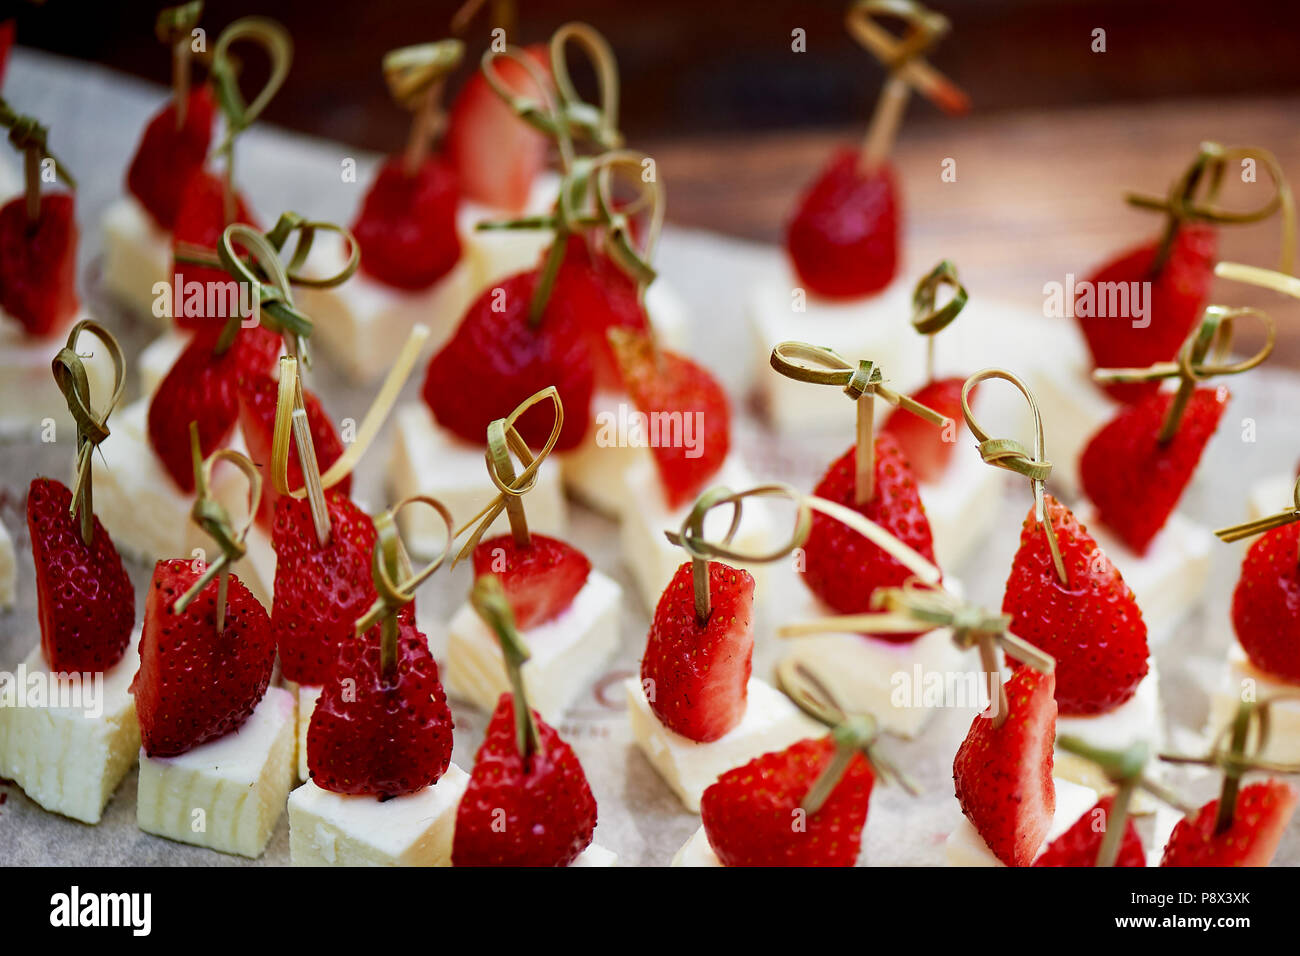 Catering for the wedding Banquet. Strawberry and cheese canap  - Stock Image